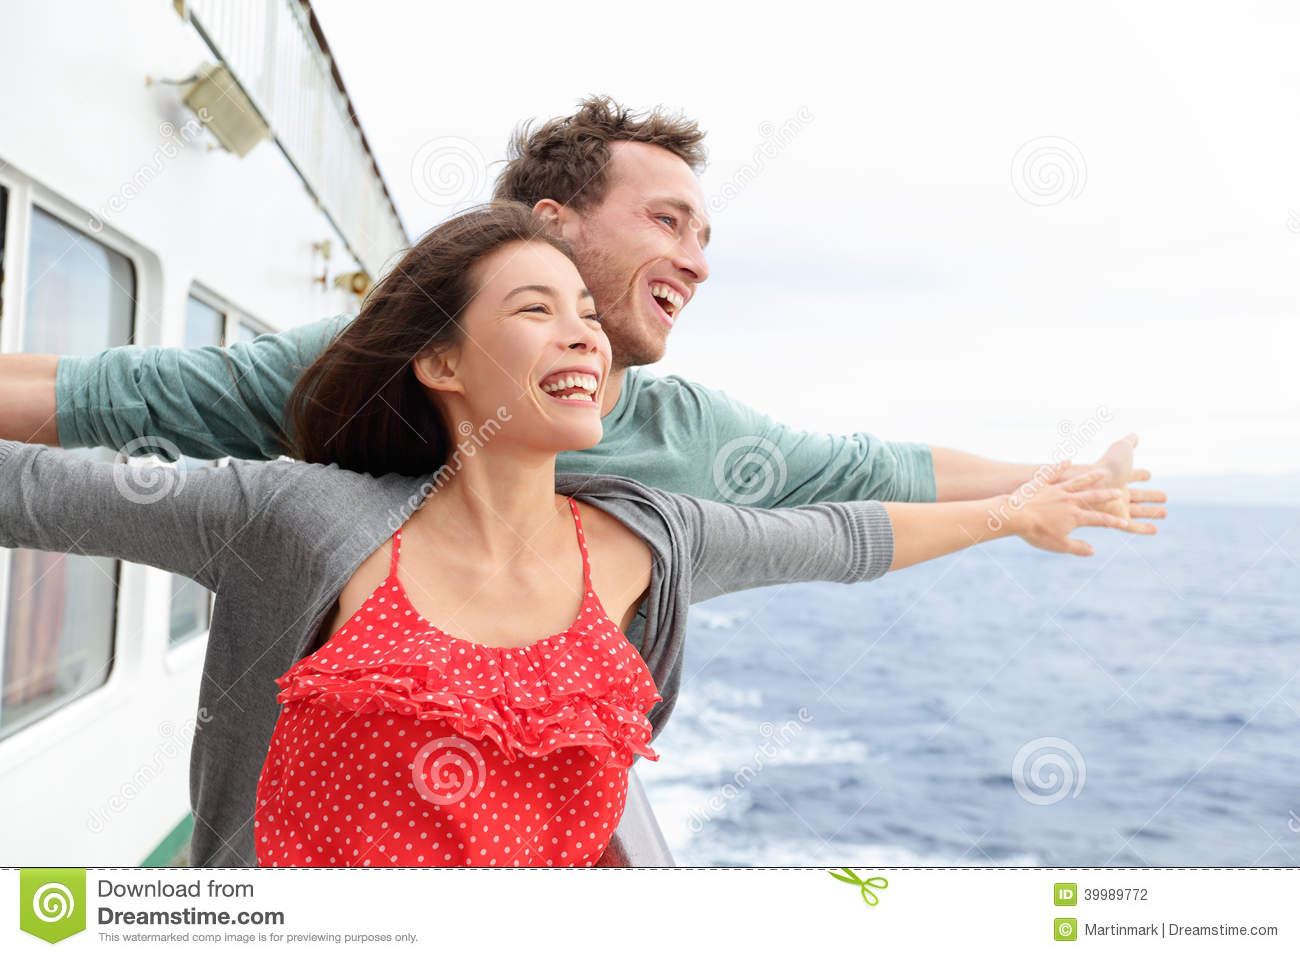 Romantic Couple Fun In Funny Pose On Cruise Ship Stock